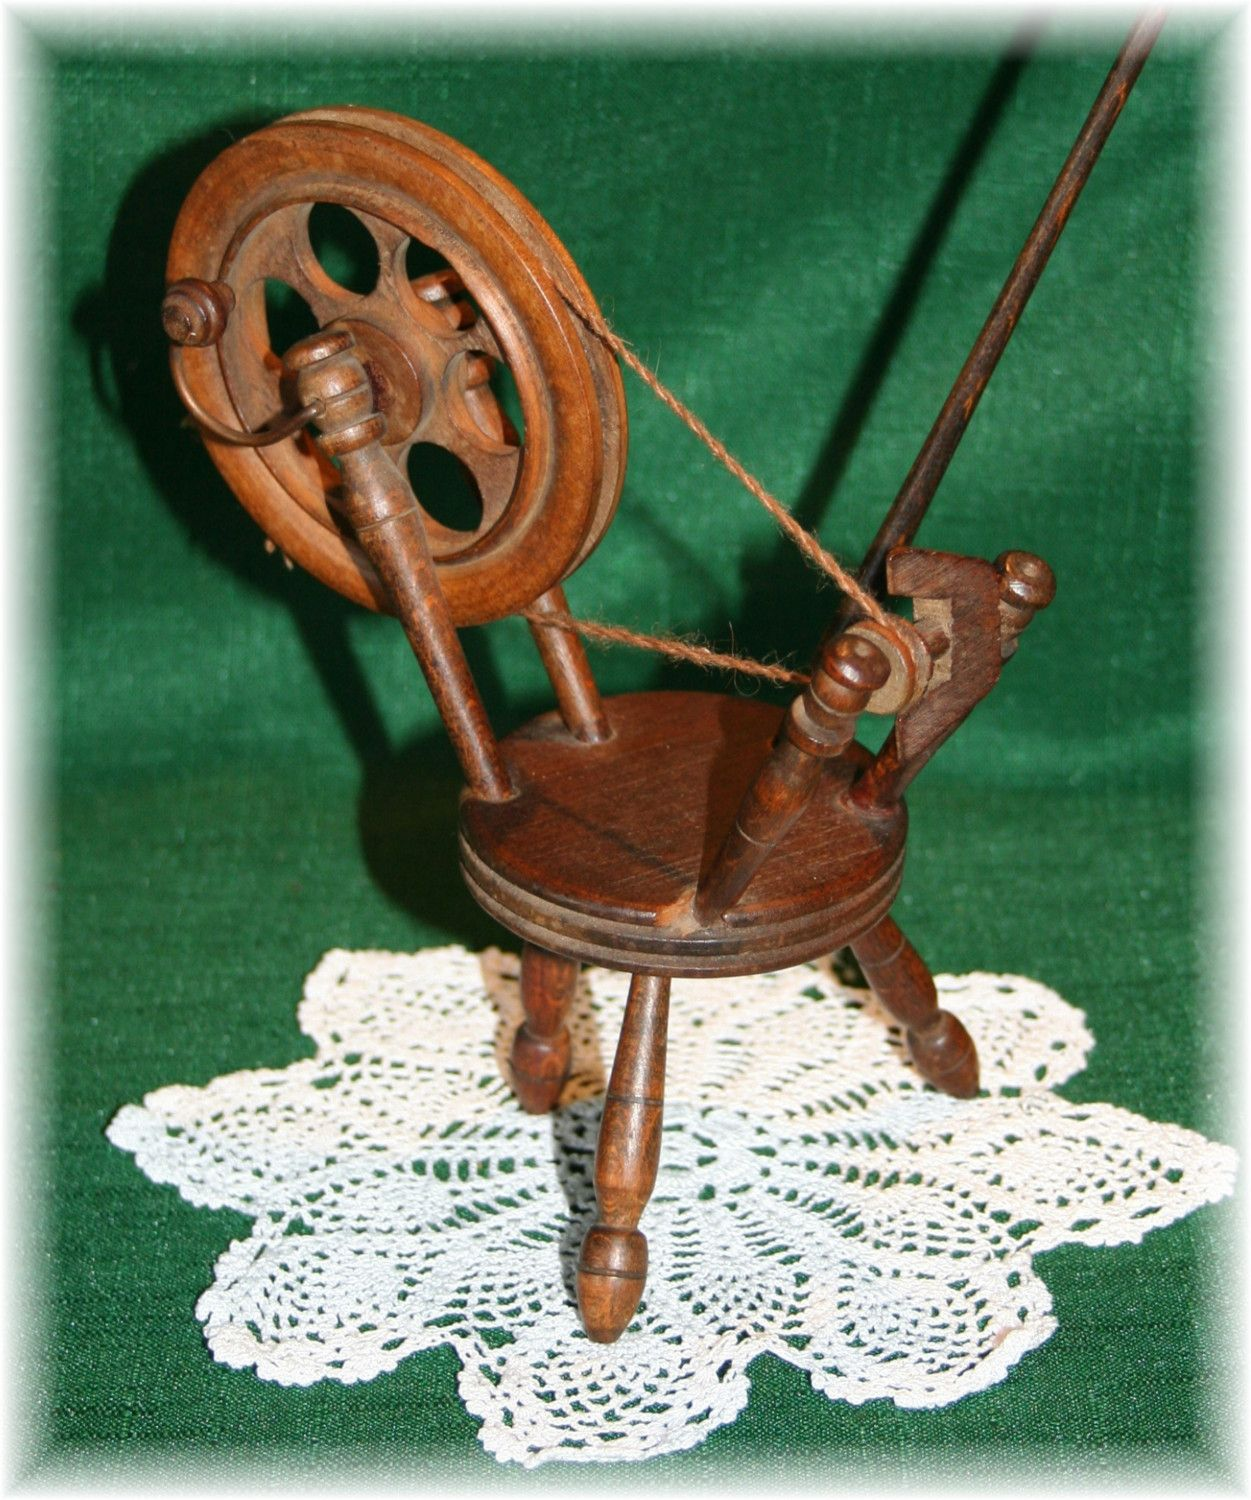 Antique Vintage Small Wooden Spinning Wheel With Spindle